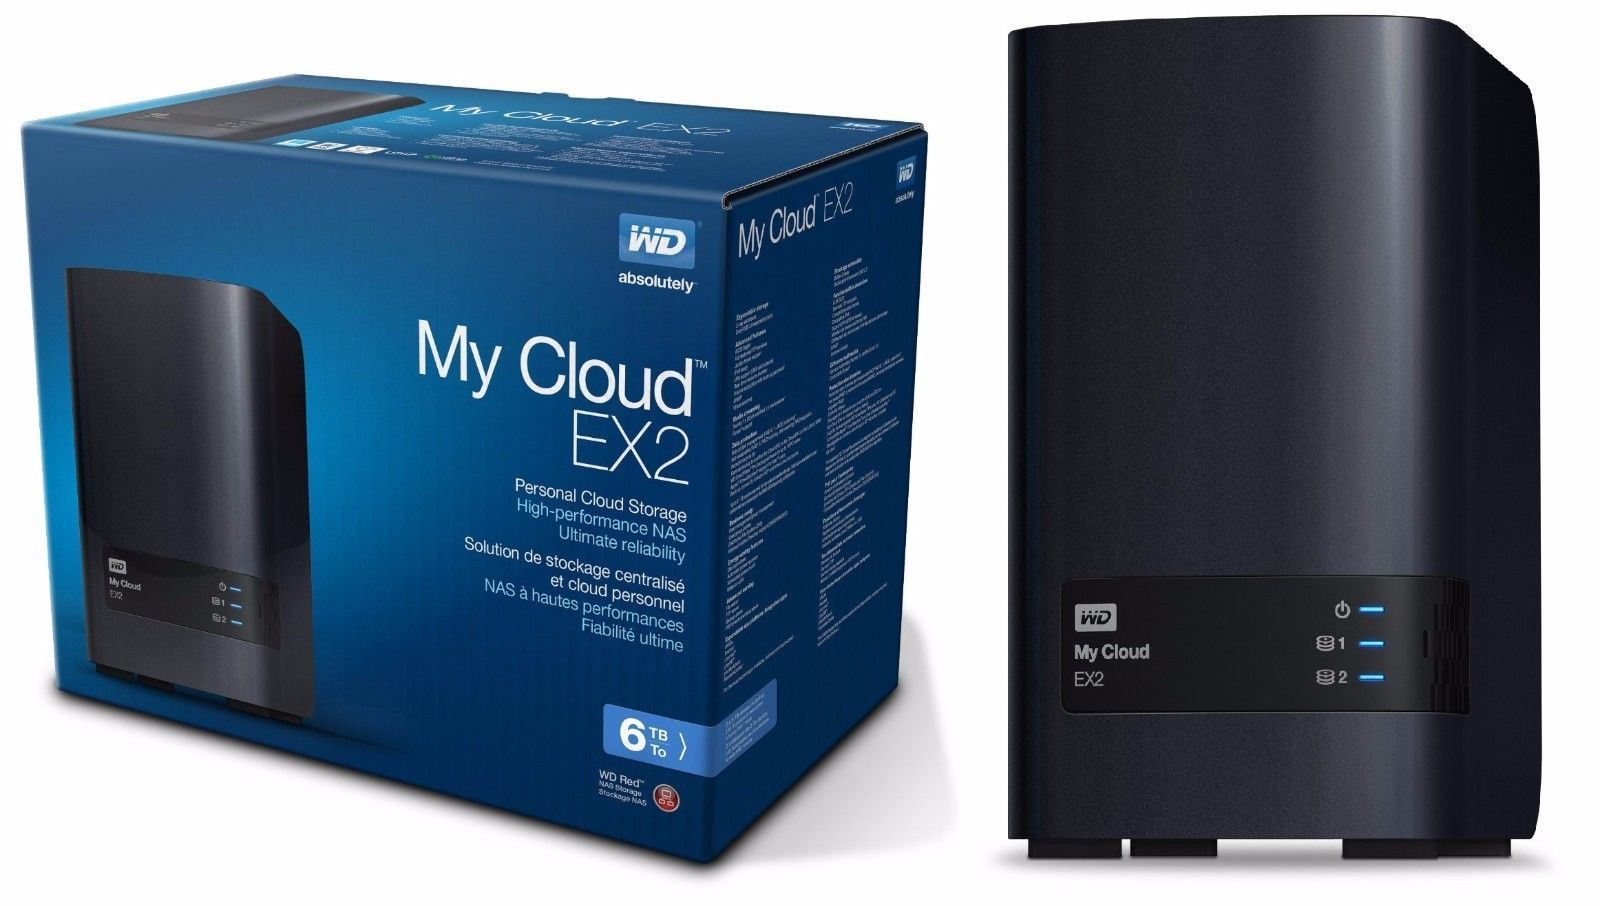 Wd 6tb My Cloud Ex2 Network Attached Storage Nas Wdbvkw0060jch Nesn 6 Tb View More On The Link Http Www Network Attached Storage Storage Packaging